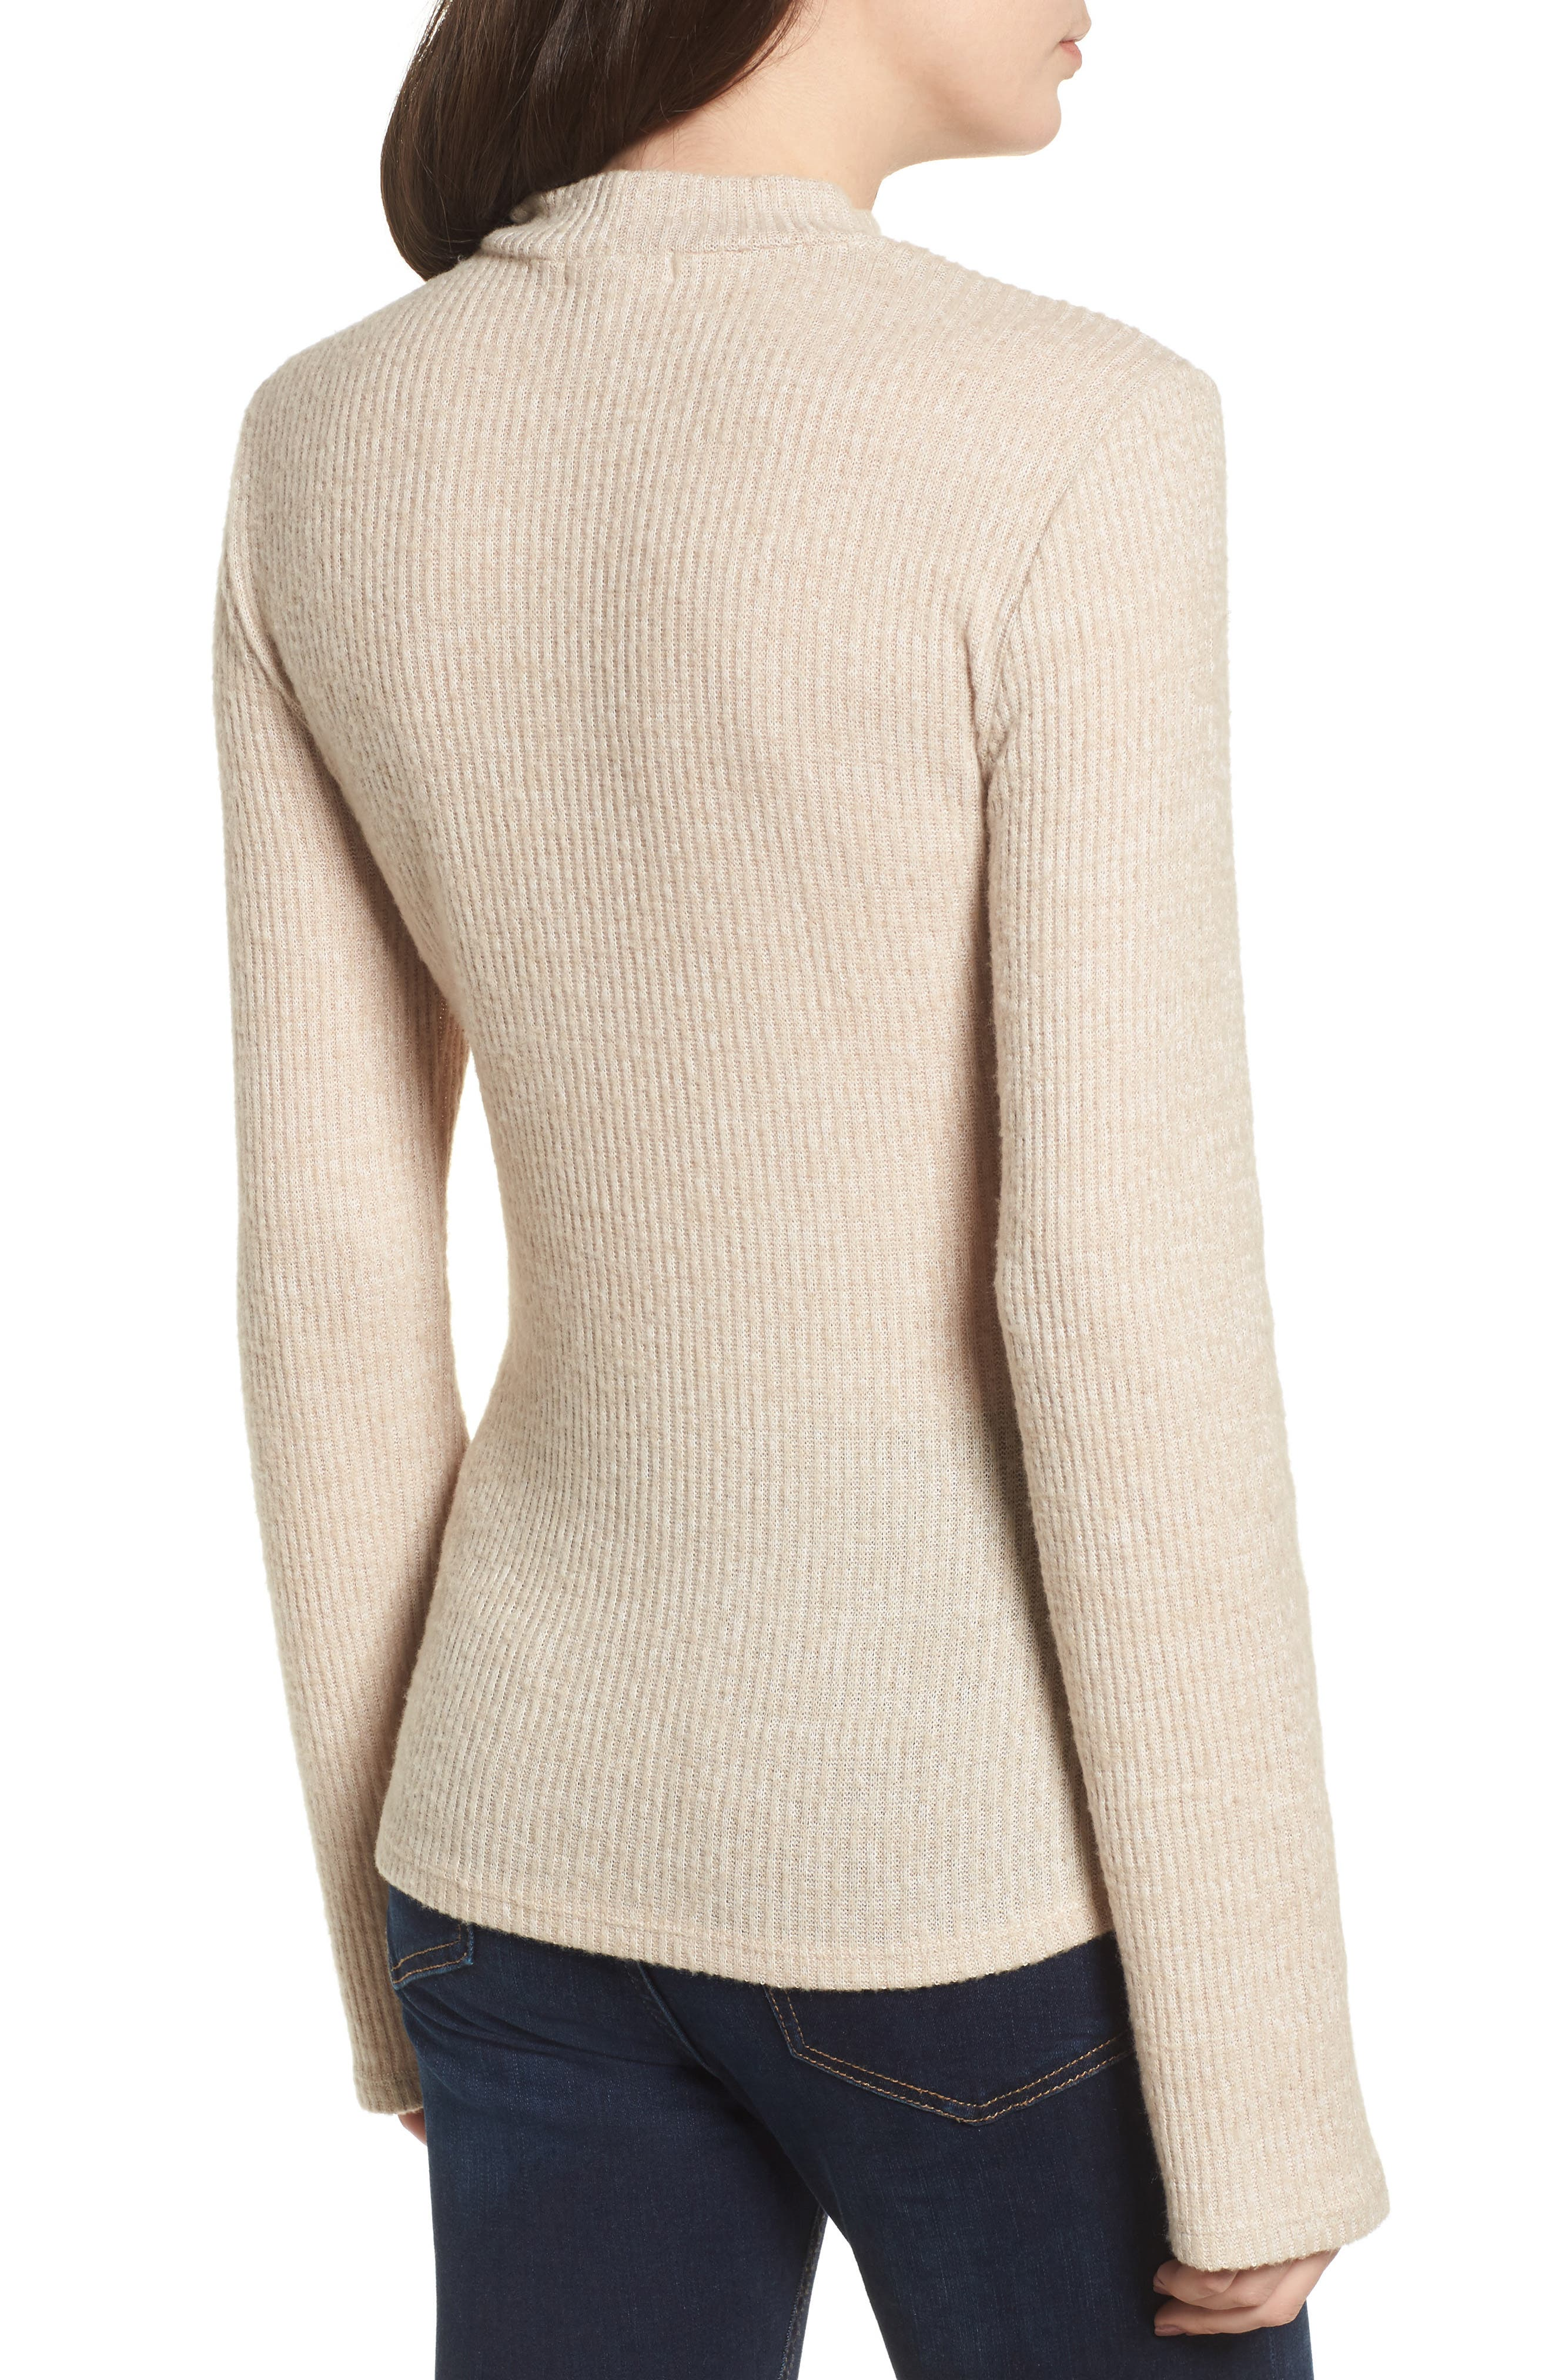 Rib Knit Corset Top,                             Alternate thumbnail 2, color,                             900